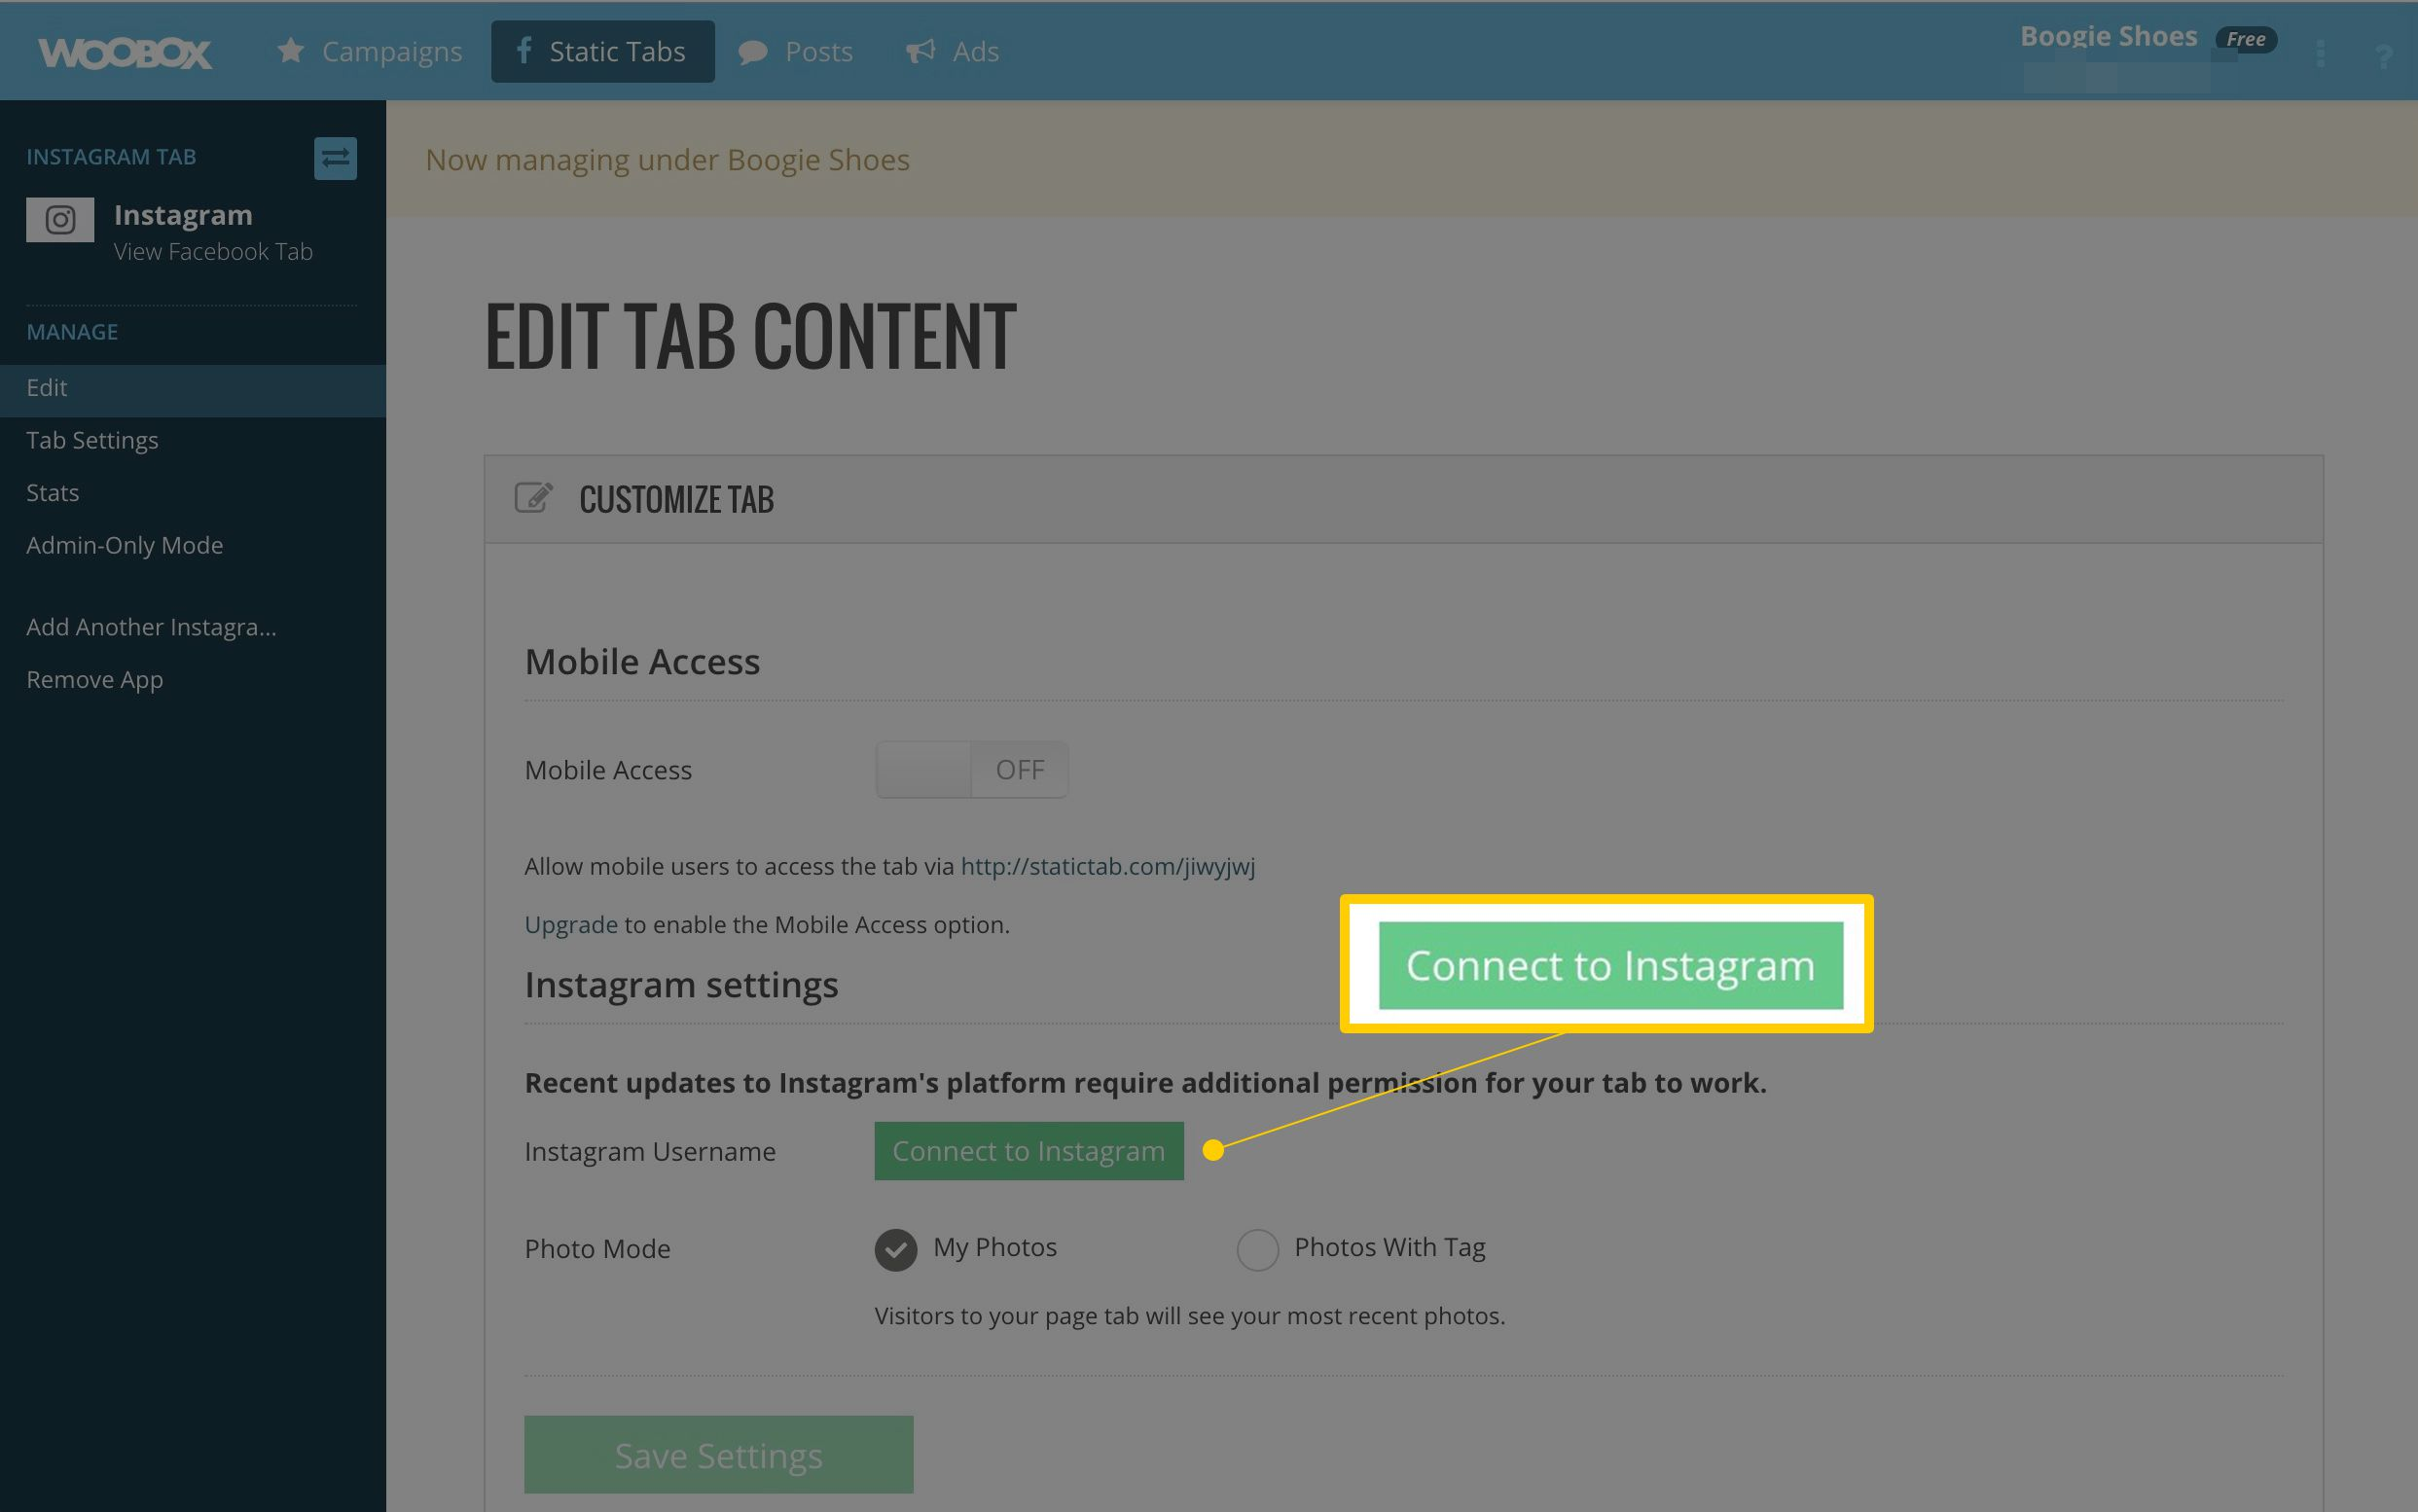 Connect to Instagram button in Woobox editing page